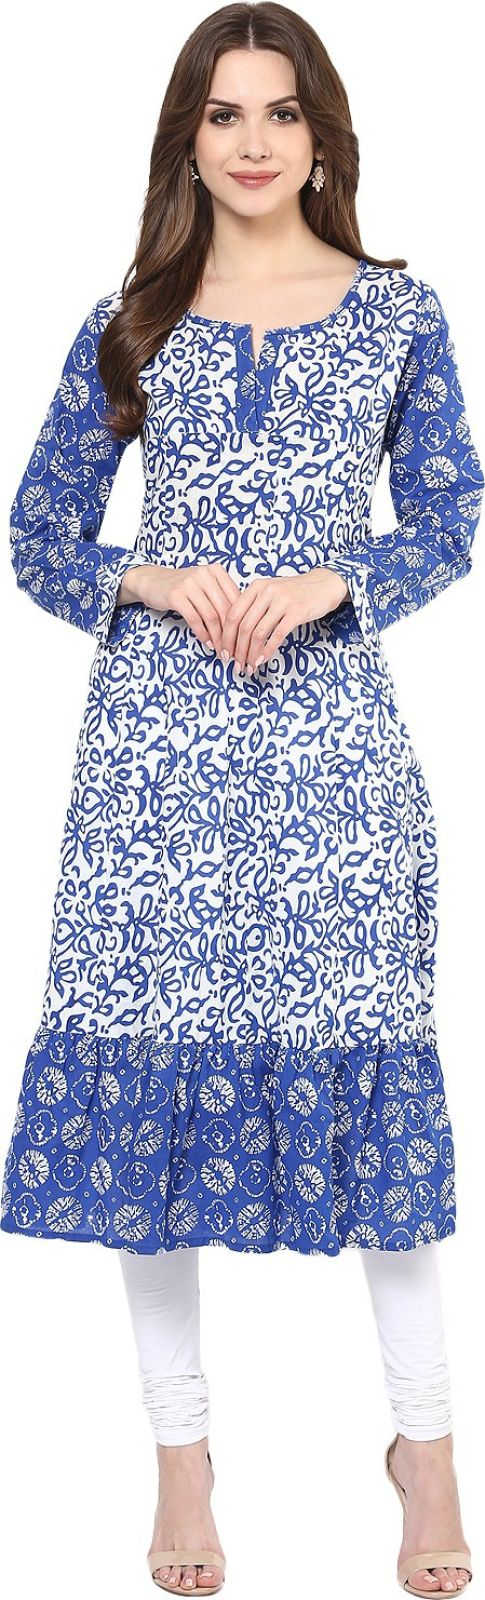 Krapal Casual Printed Womens Kurti (Blue)